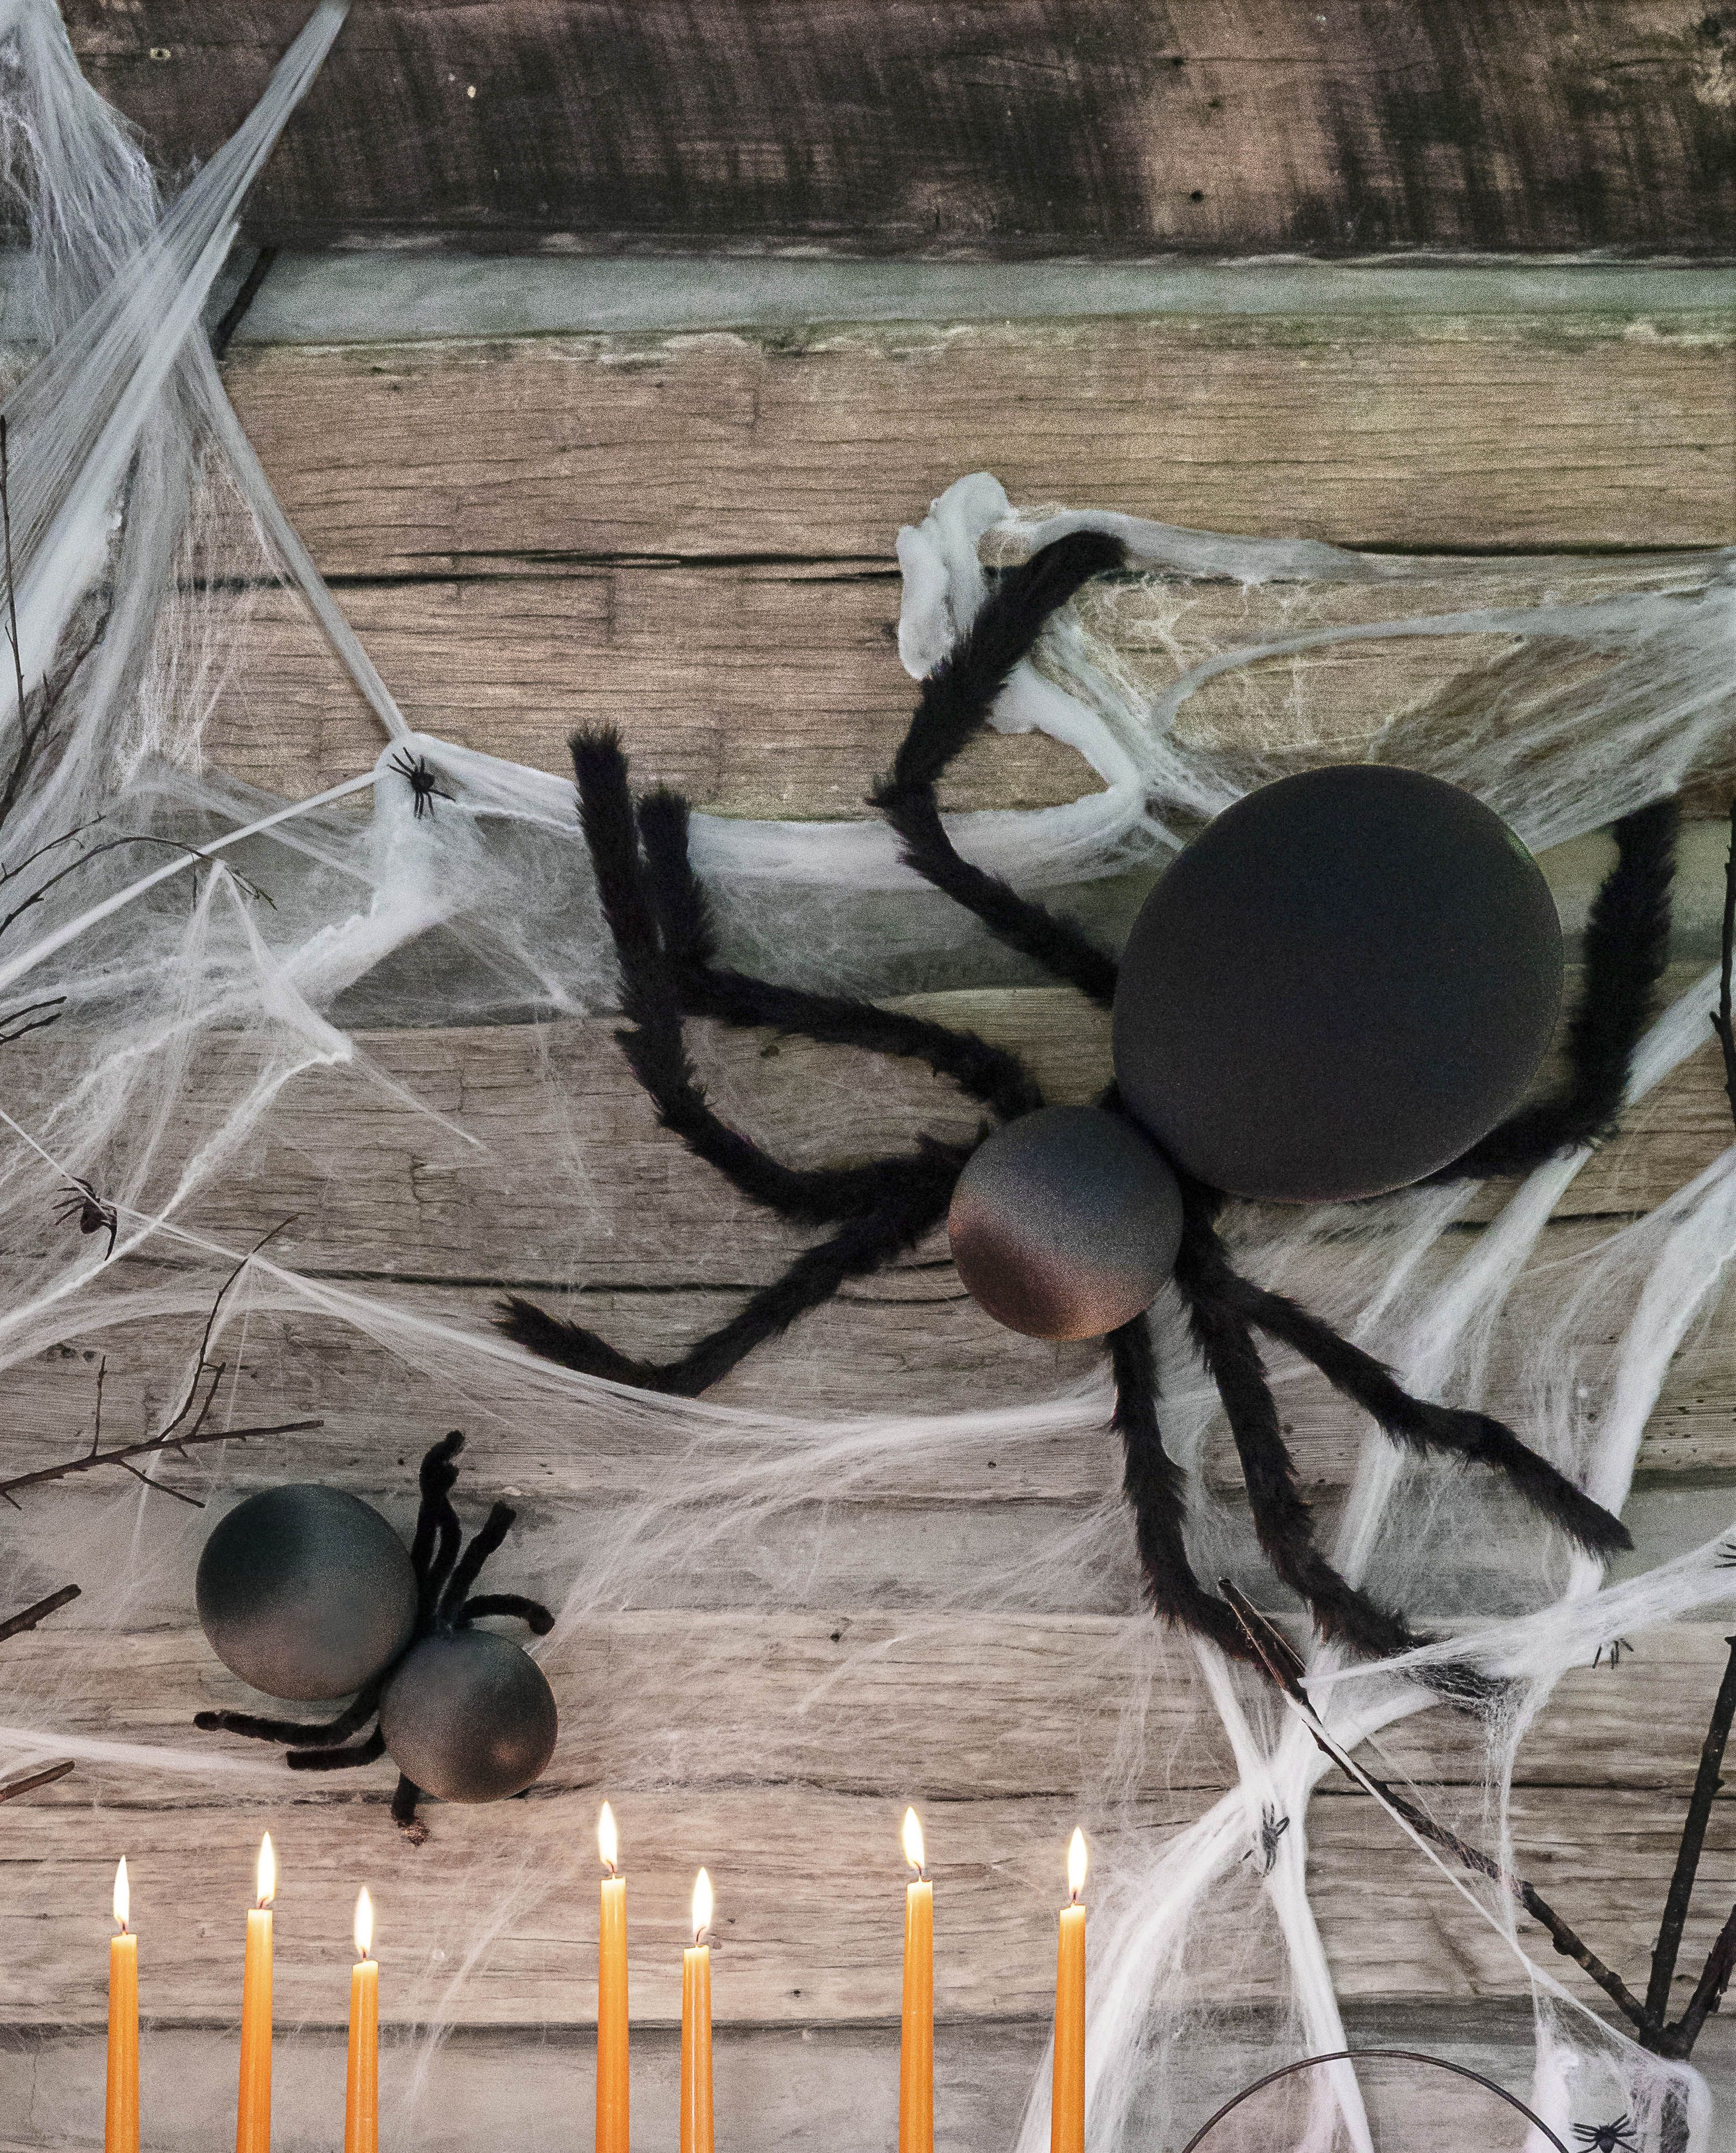 giant spiders on a wall made from ballons and wire